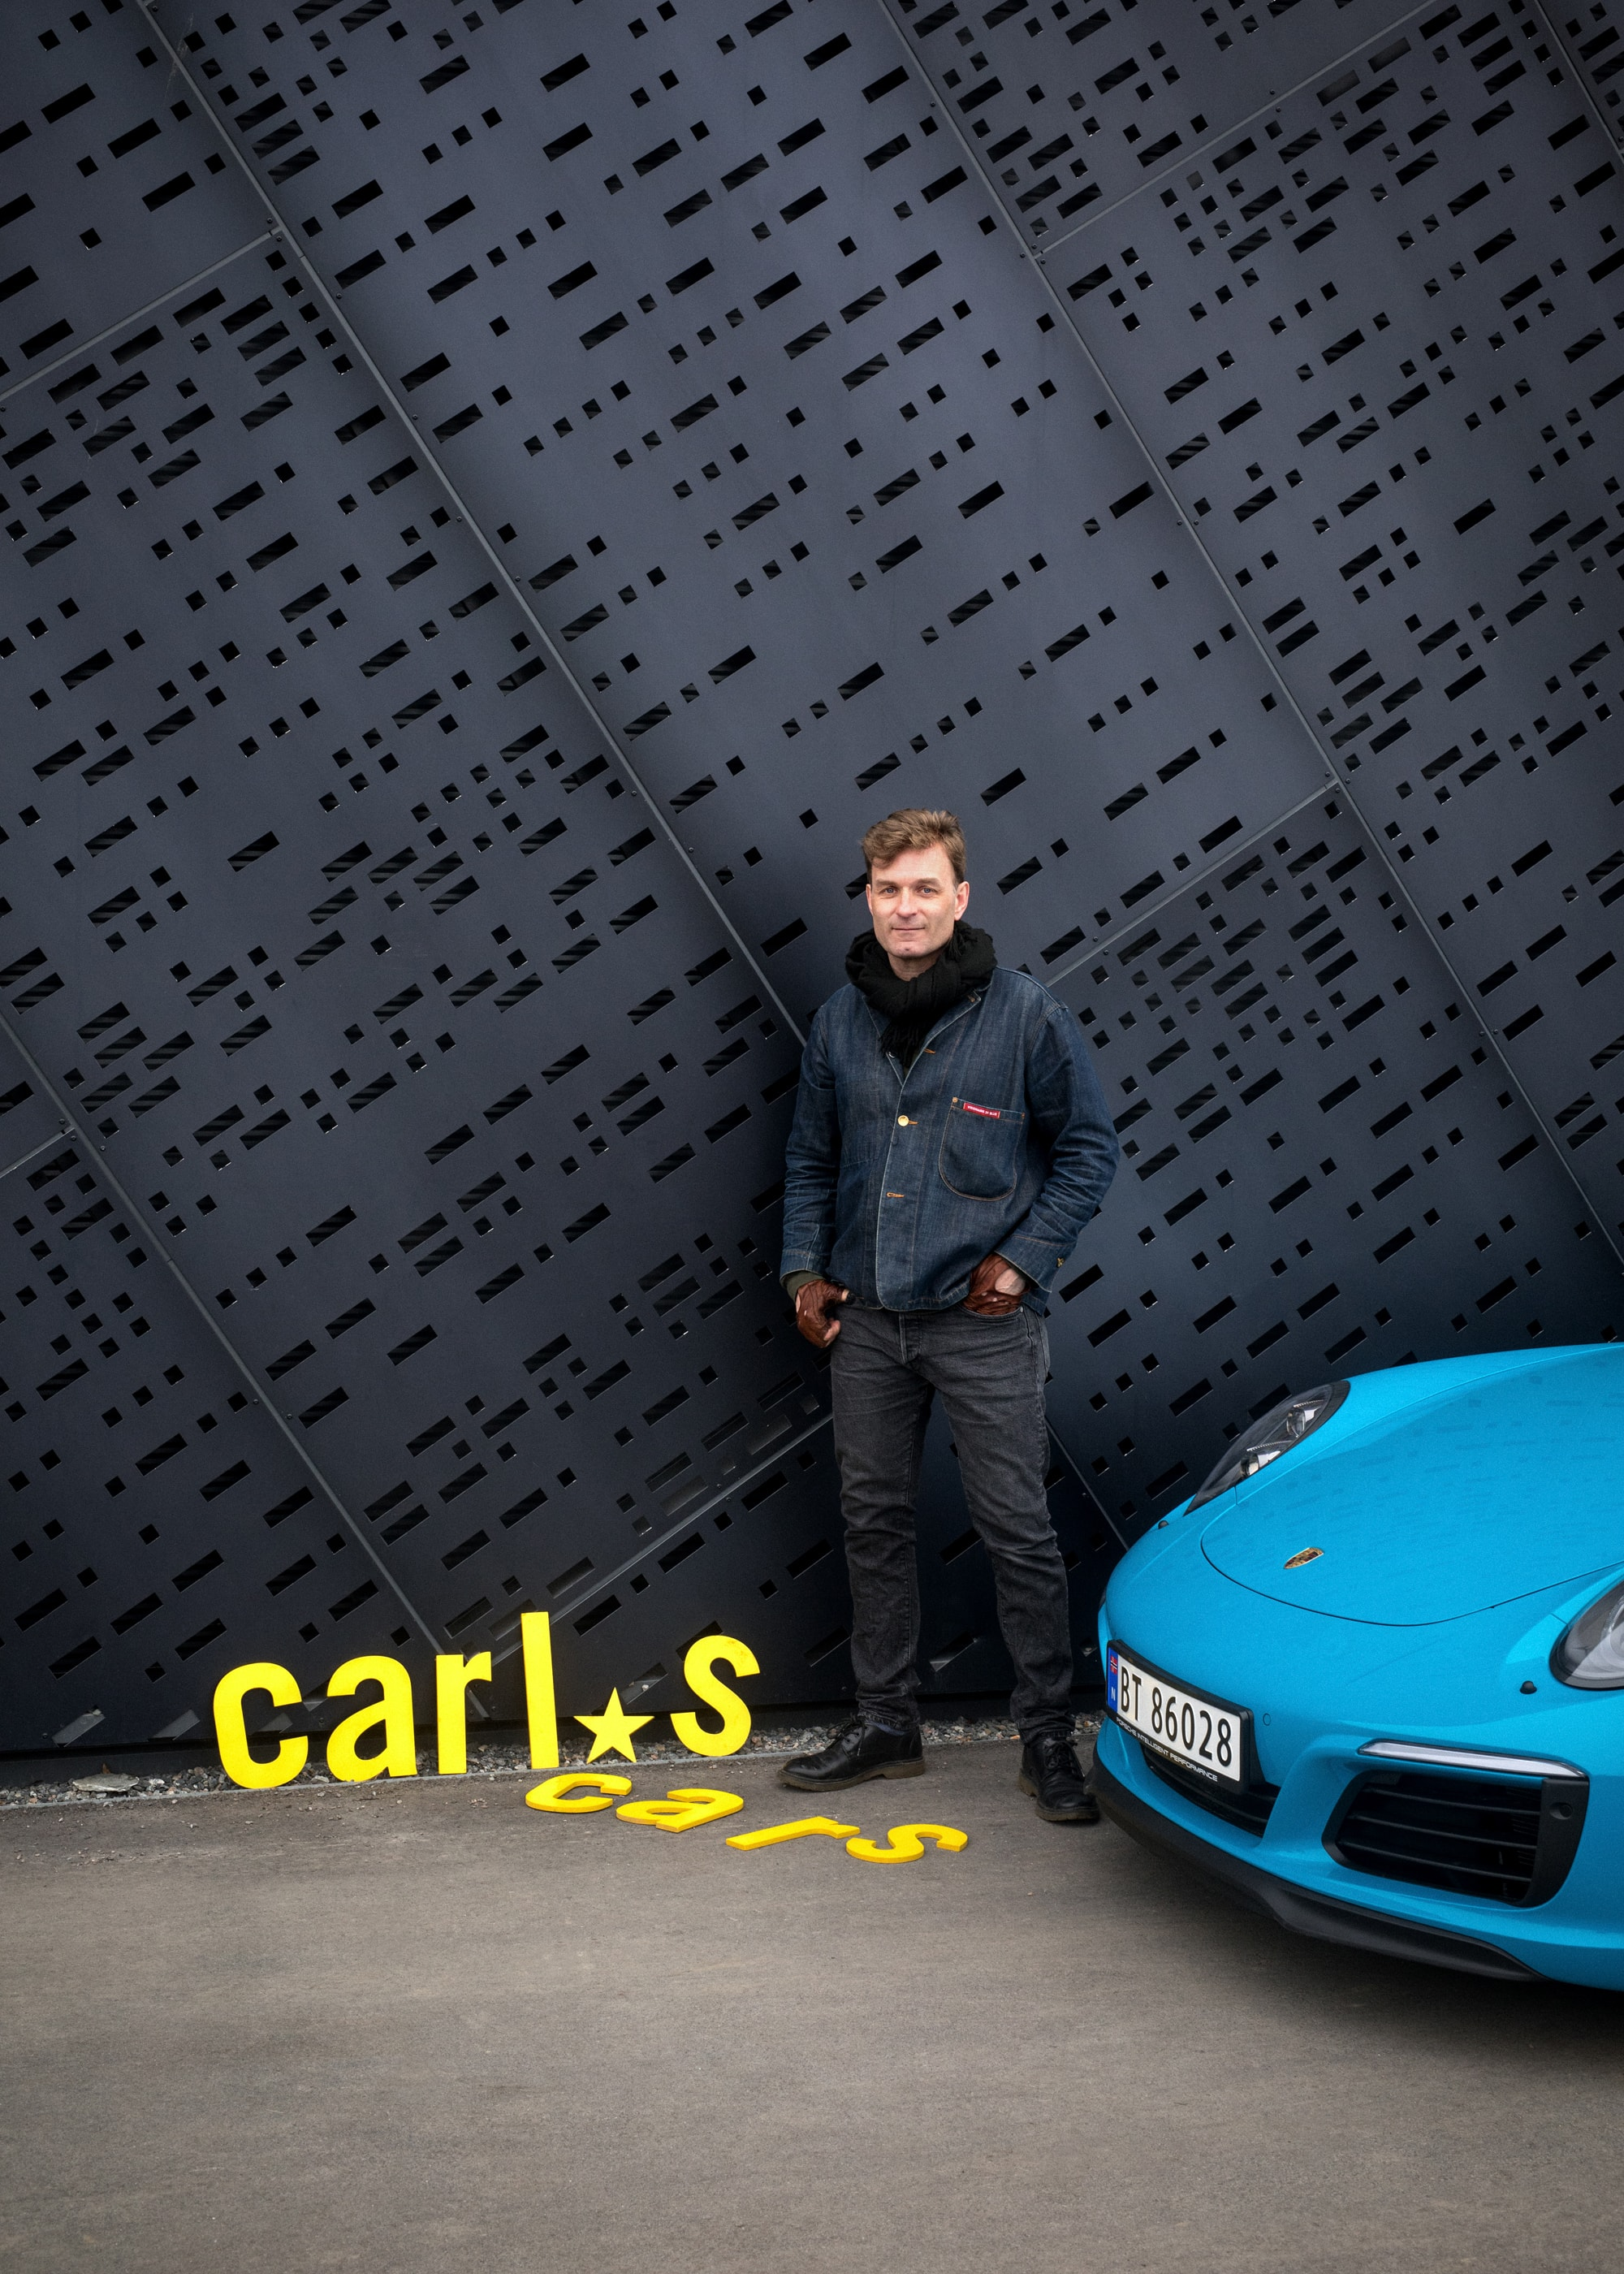 Kimm Saatvedt – Carl's Cars for Porsche Norway